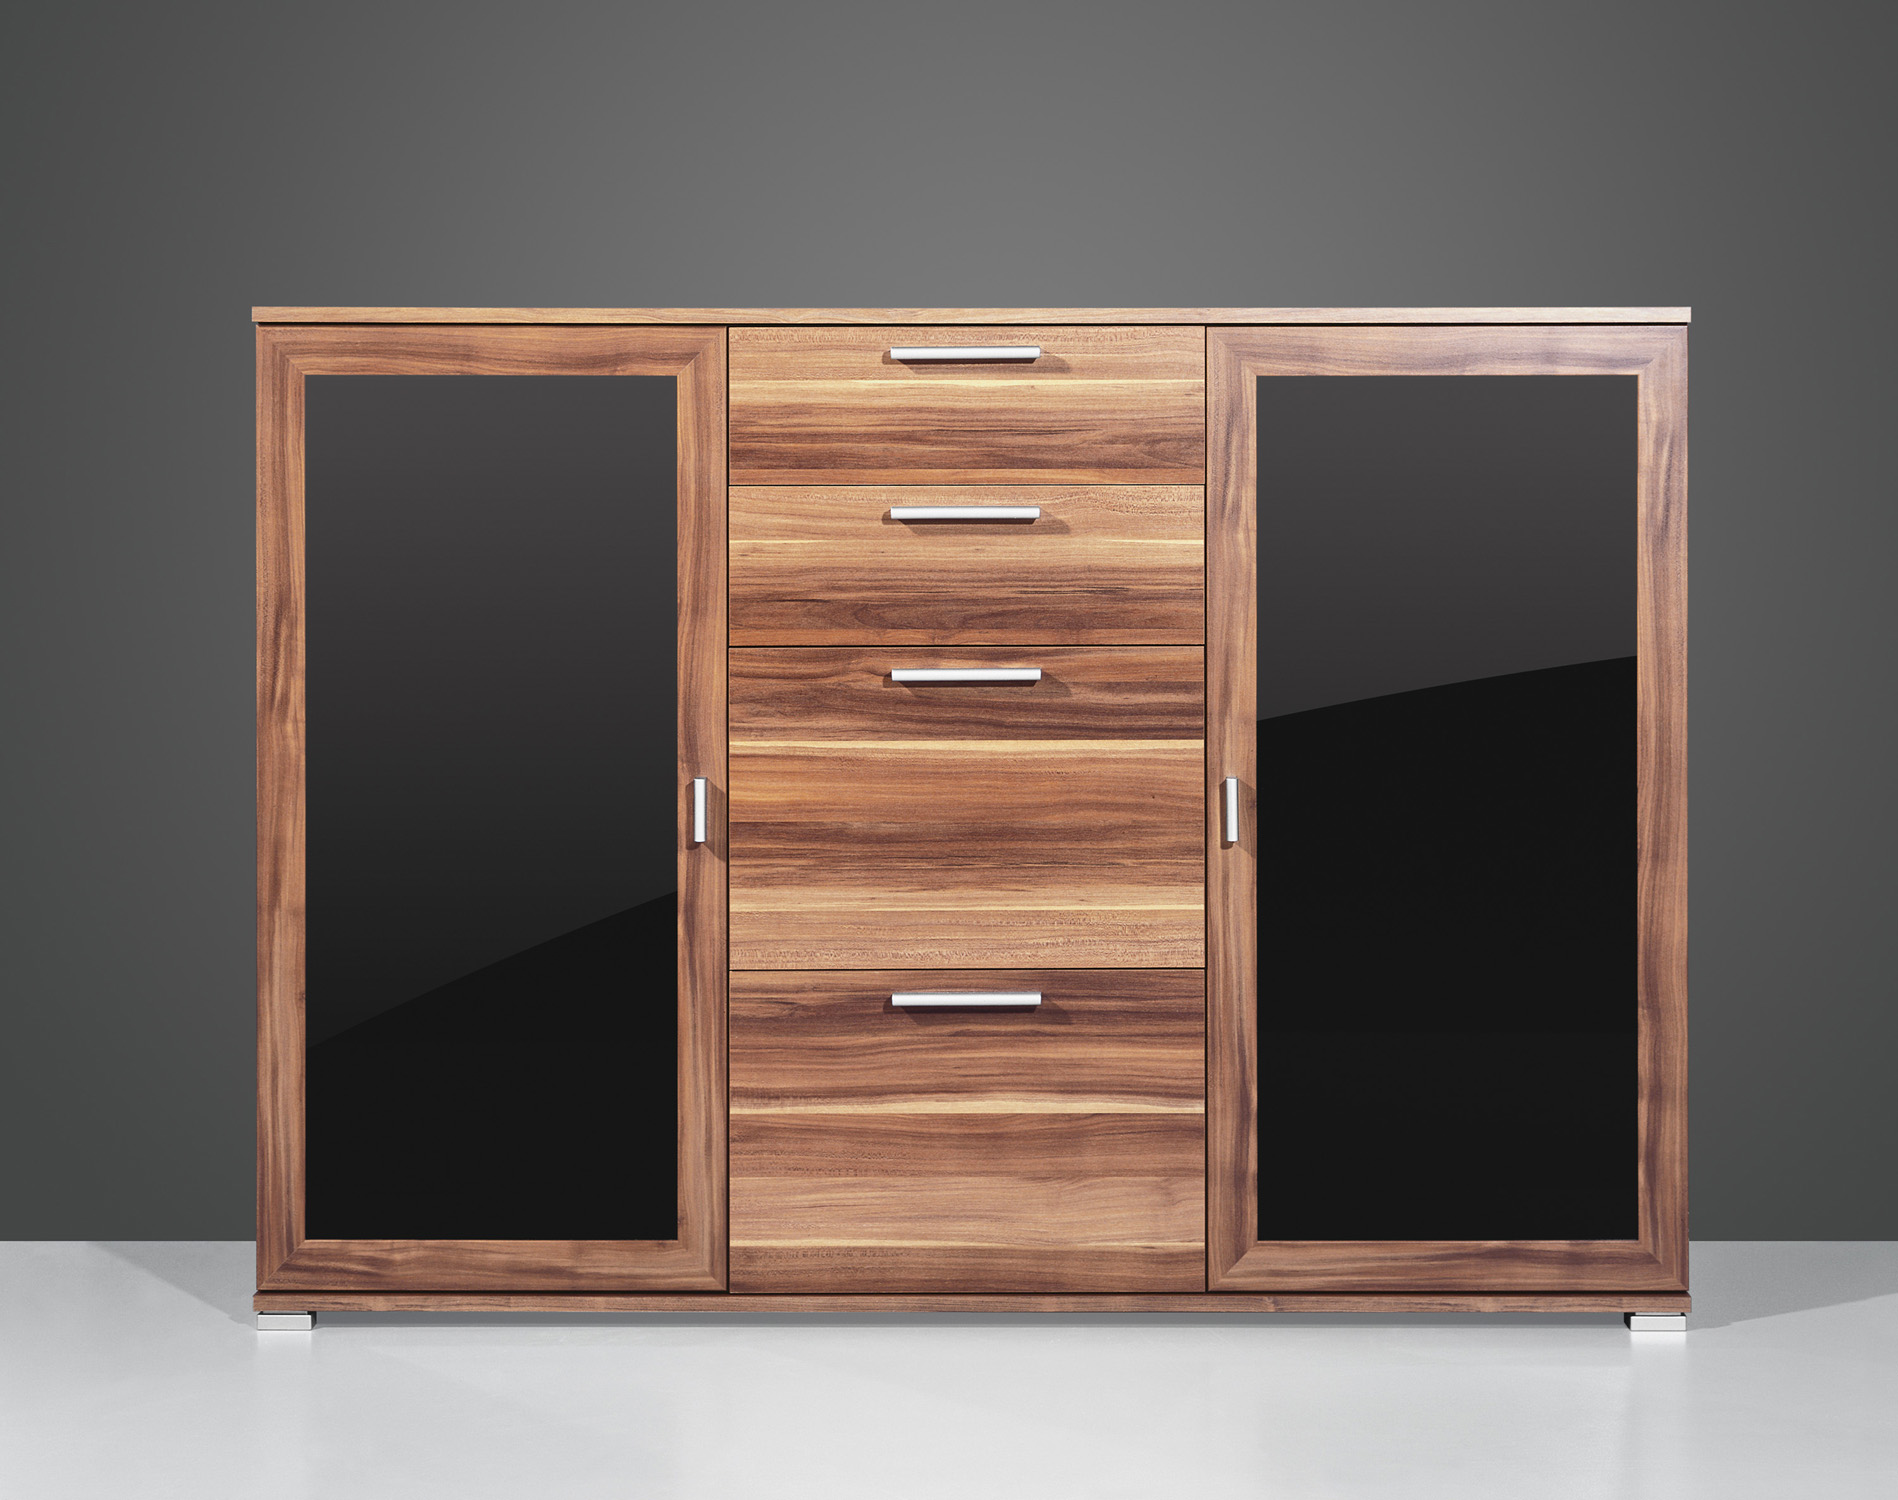 kommode weisnussbaum die neuesten innenarchitekturideen. Black Bedroom Furniture Sets. Home Design Ideas